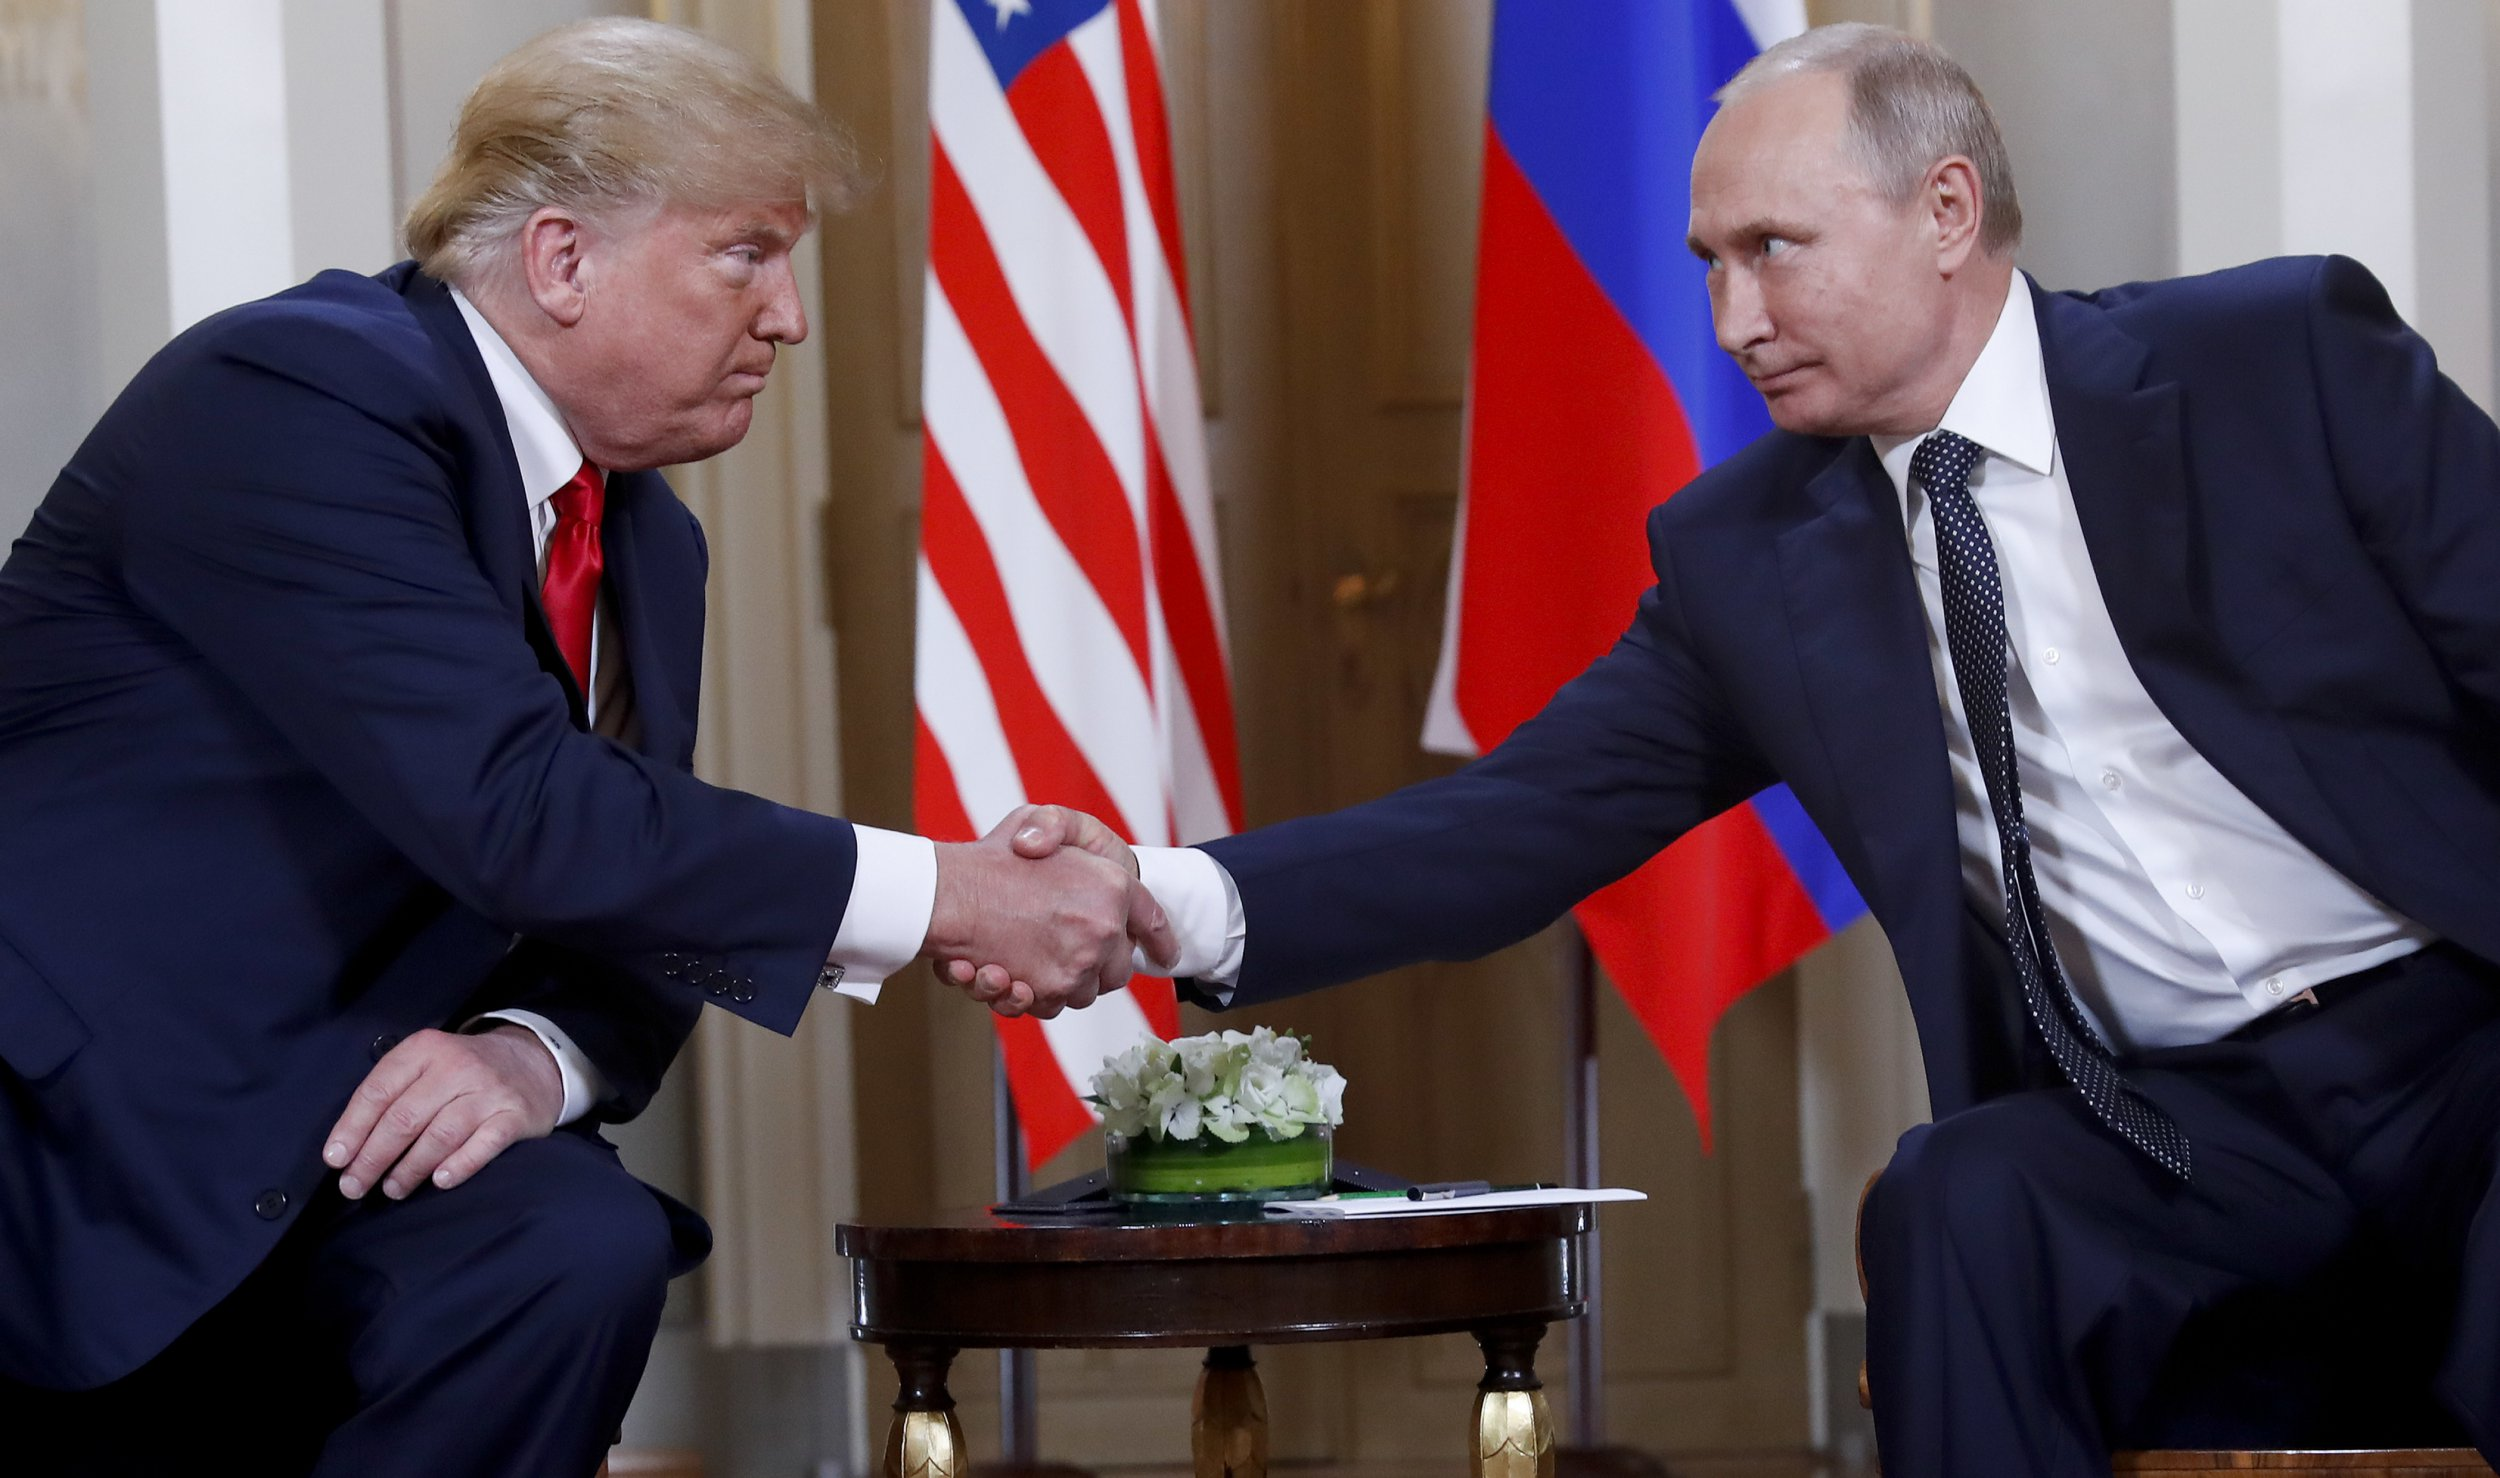 In this July 16, 2018, photo, U.S. President Donald Trump, left, and Russian President Vladimir Putin, right, shake hands at the beginning of a meeting at the Presidential Palace in Helsinki, Finland. Trump and Putin may have reached several historic agreements at their summit in Finland this week. Or, they may not have. Three days later no one is quite sure. With no details emerging from the leaders??? one-on-one discussion on Monday other than the vague outline they offered themselves, officials, lawmakers and the public in the United States in particular are wondering what, if anything, was actually agreed to. (AP Photo/Pablo Martinez Monsivais)